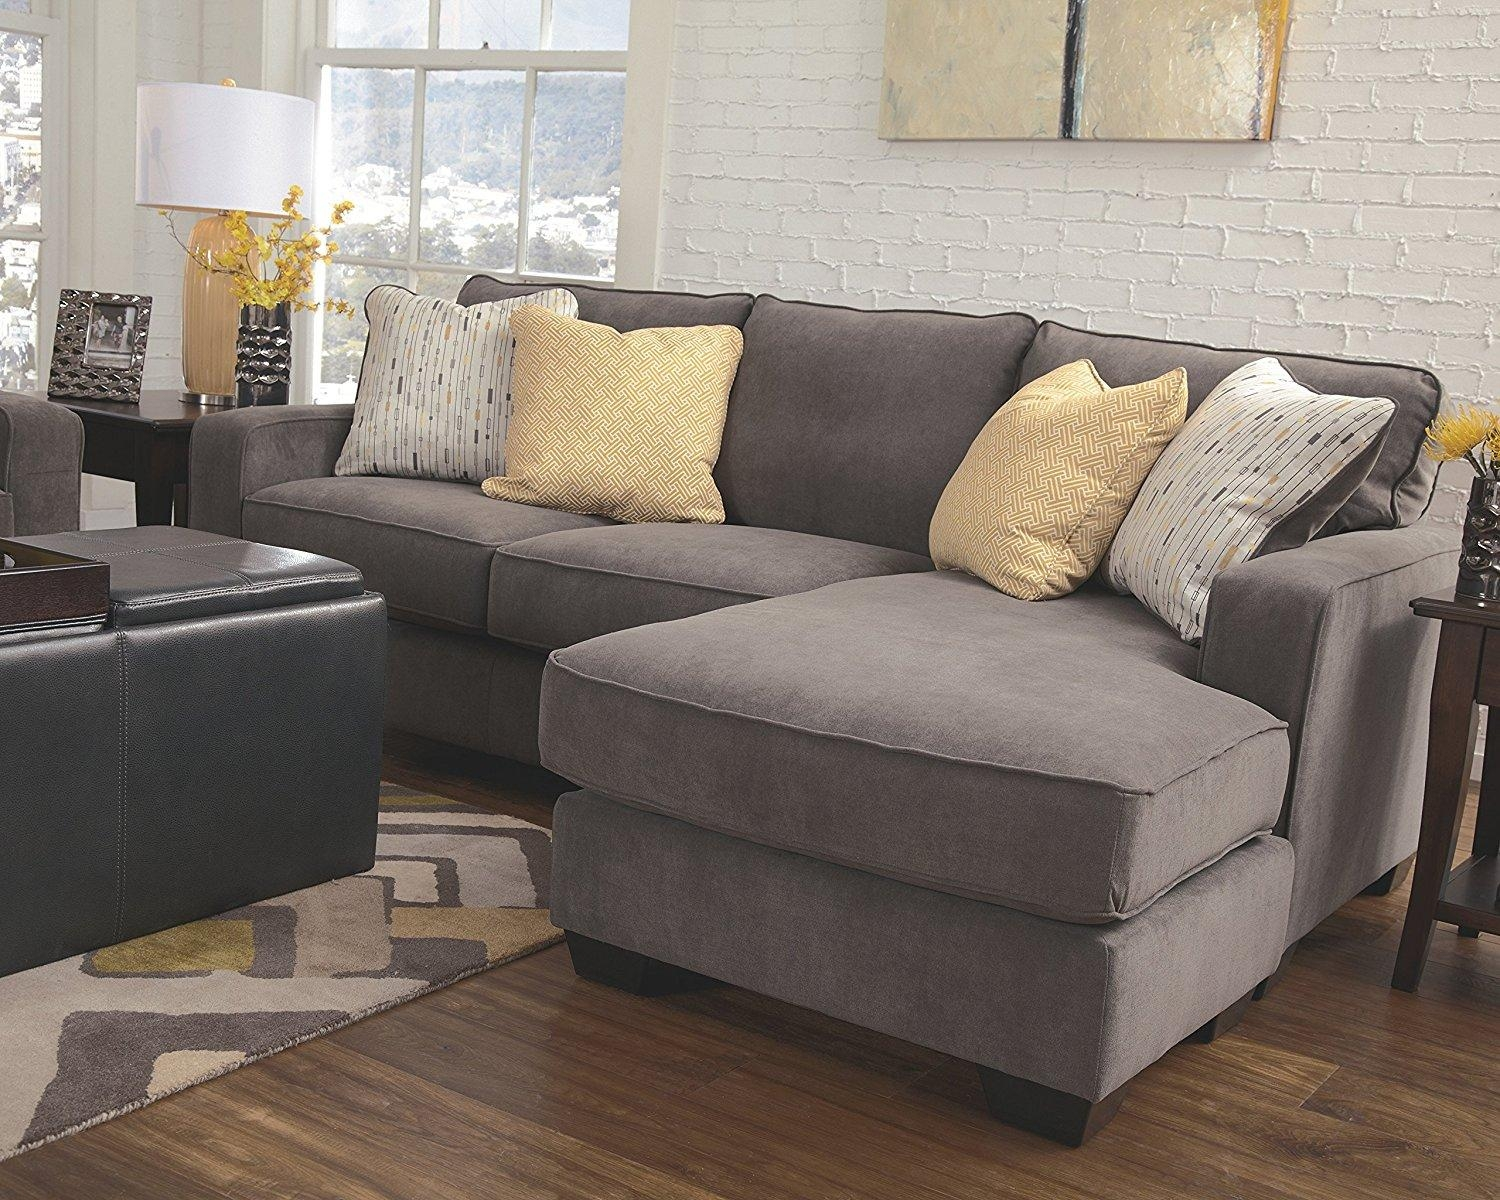 Furniture: Fascinating Grey Sectional Costco With Pattern Rug Also With Costco Wall Art (Image 10 of 20)